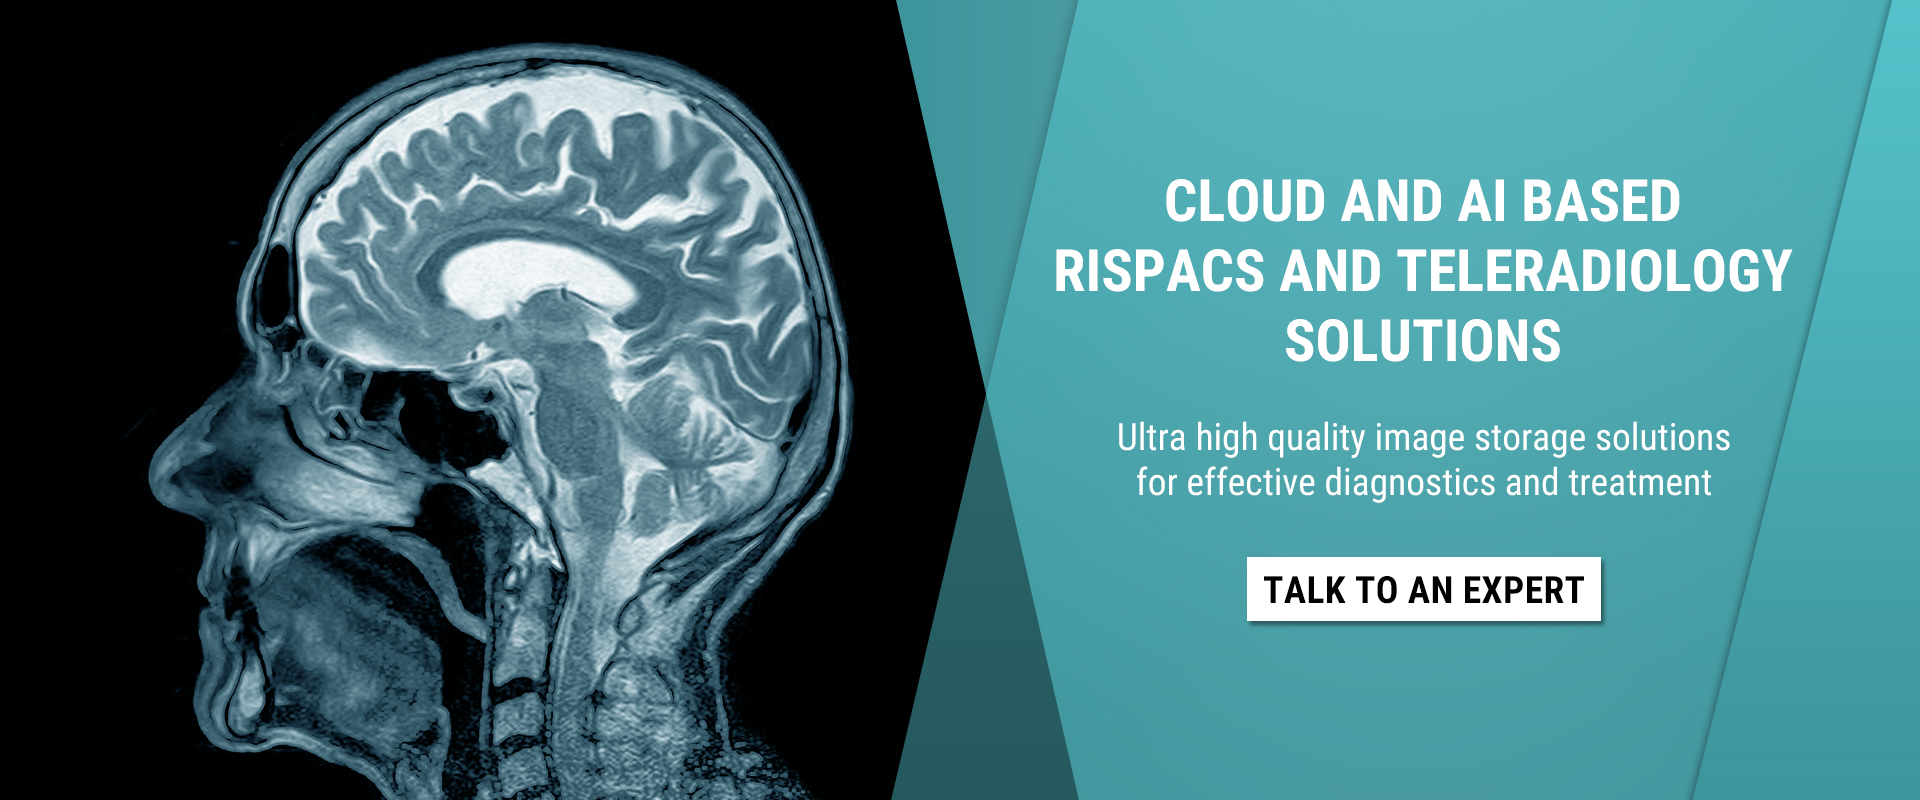 Cloud and AI based RISPACS and Teleradiology solutions